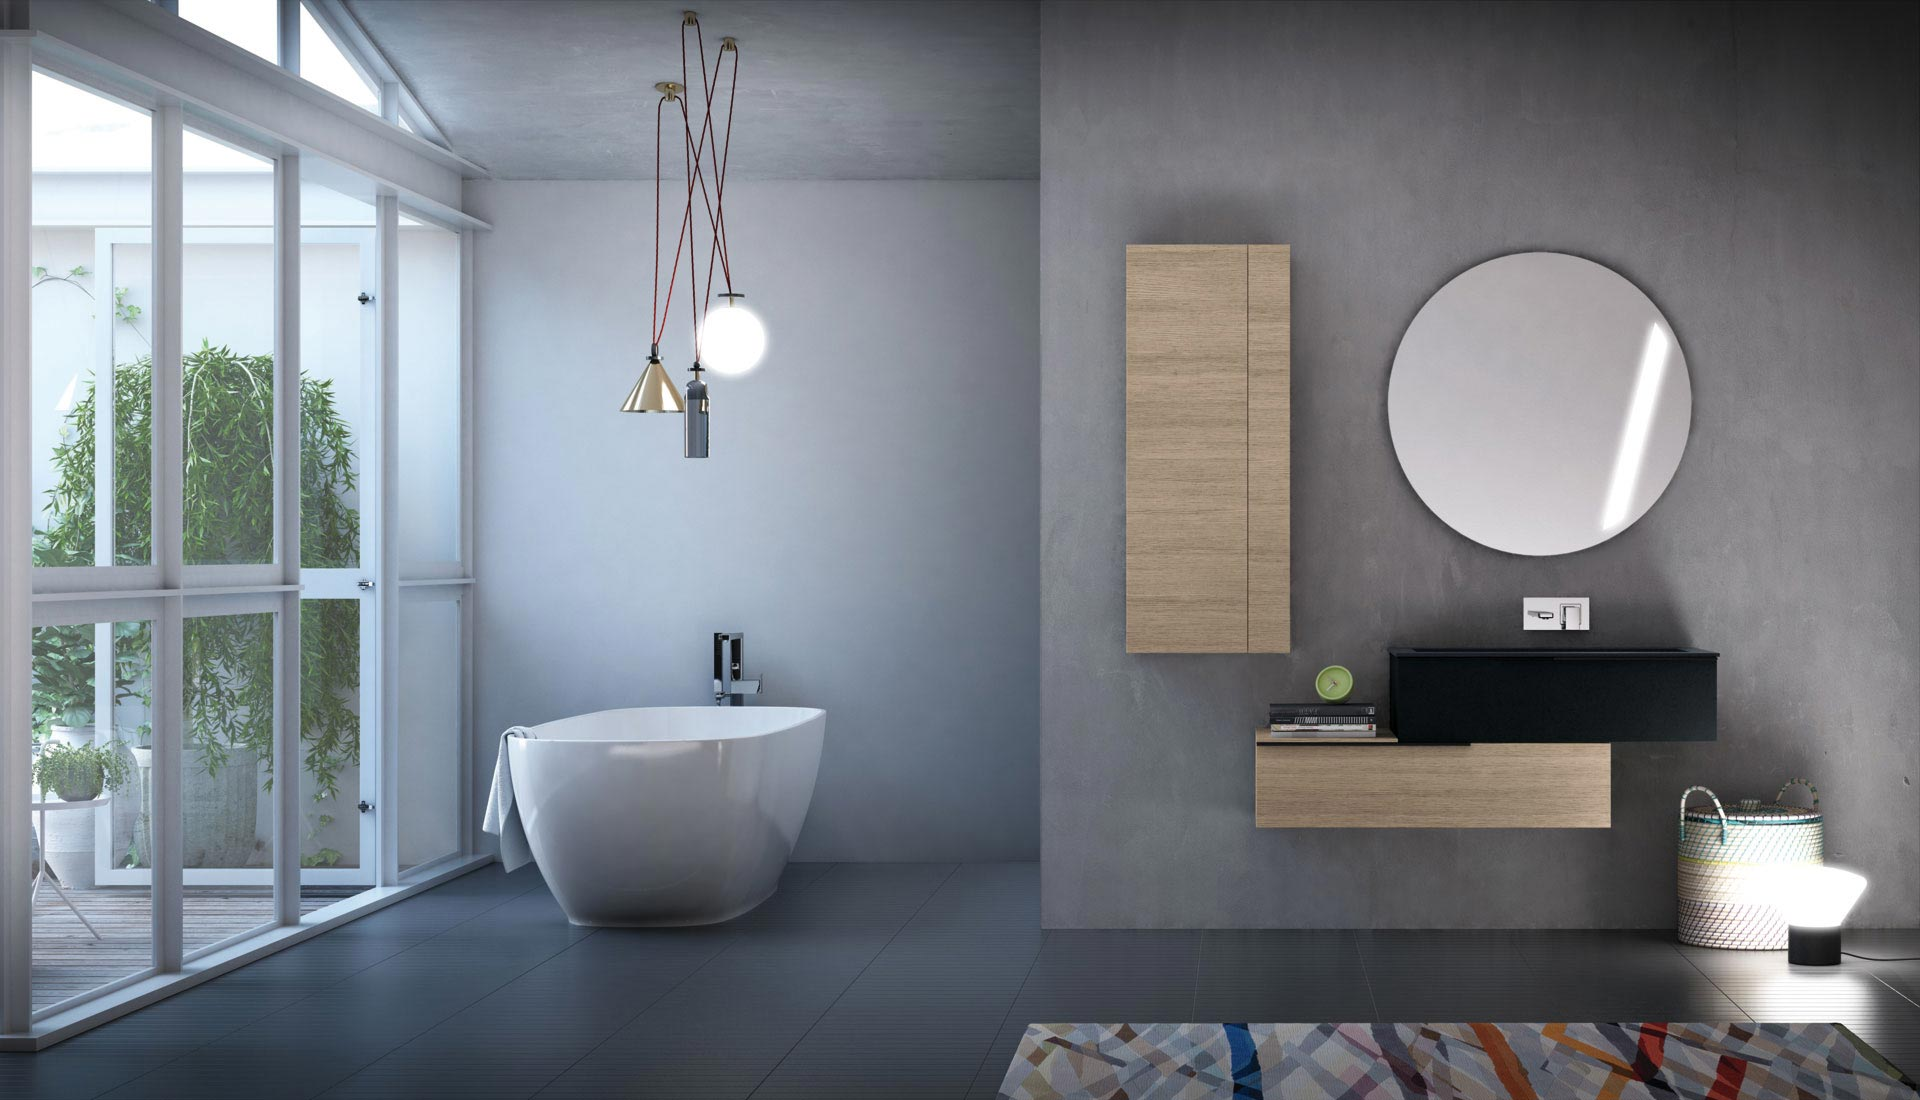 puntotre bathrooms furniture and bath furnishing ideas - Casa Arredo Bagno